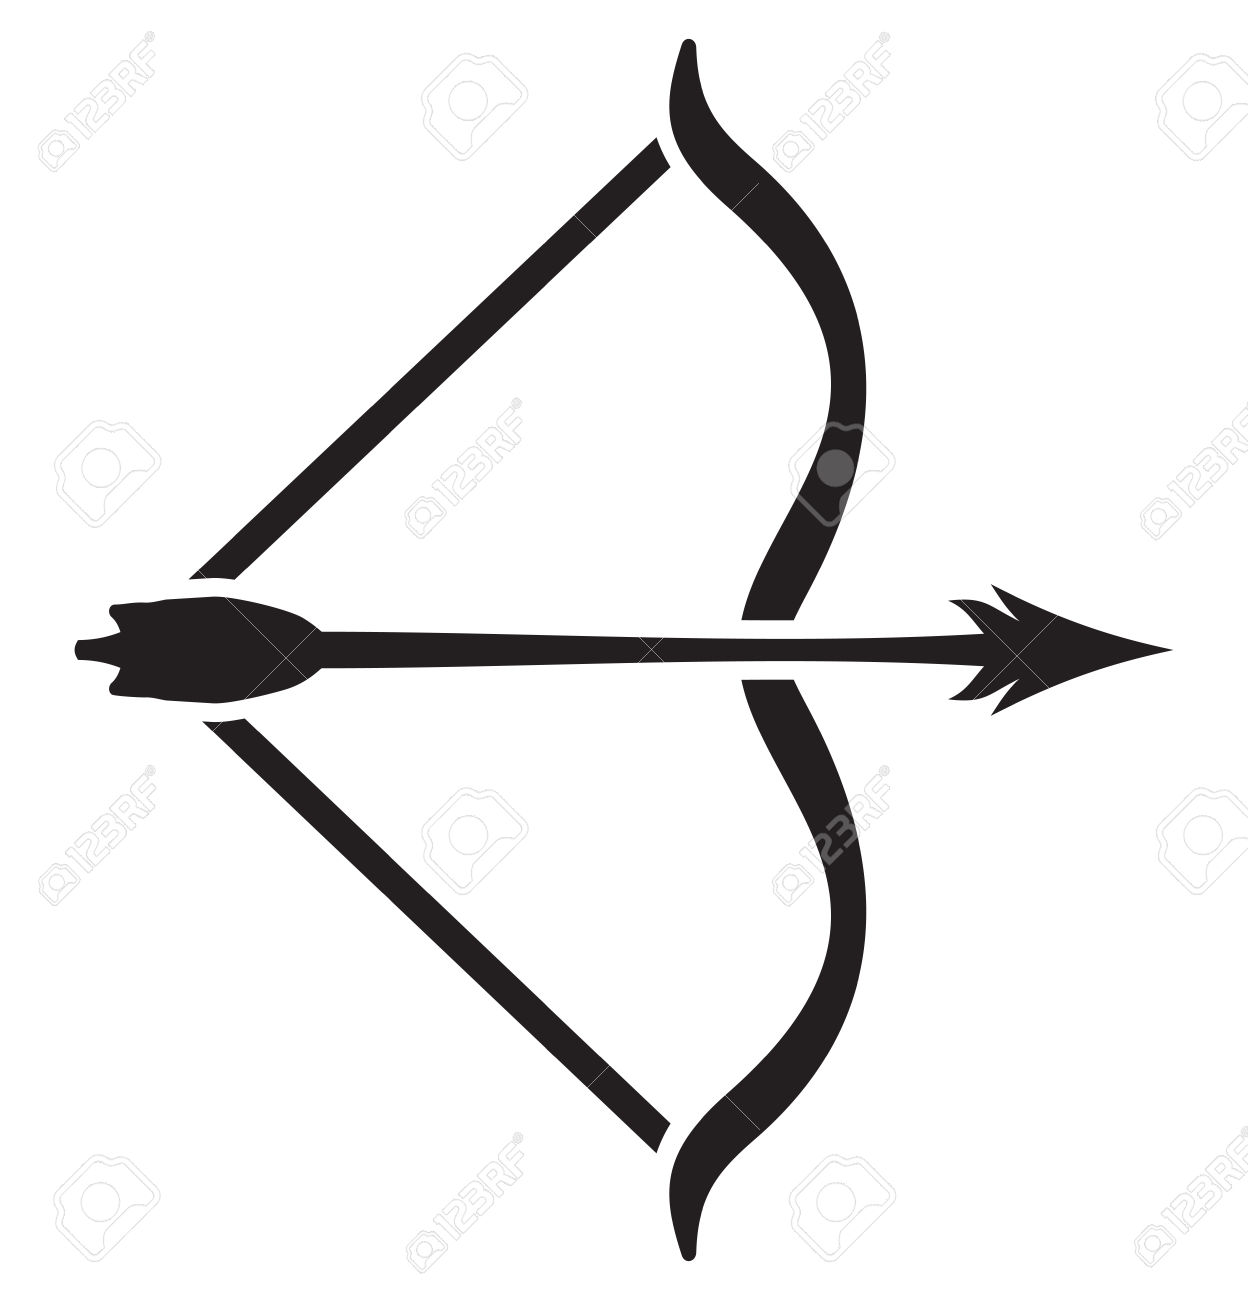 Clipart Of Archery Bow And Arrow Outline